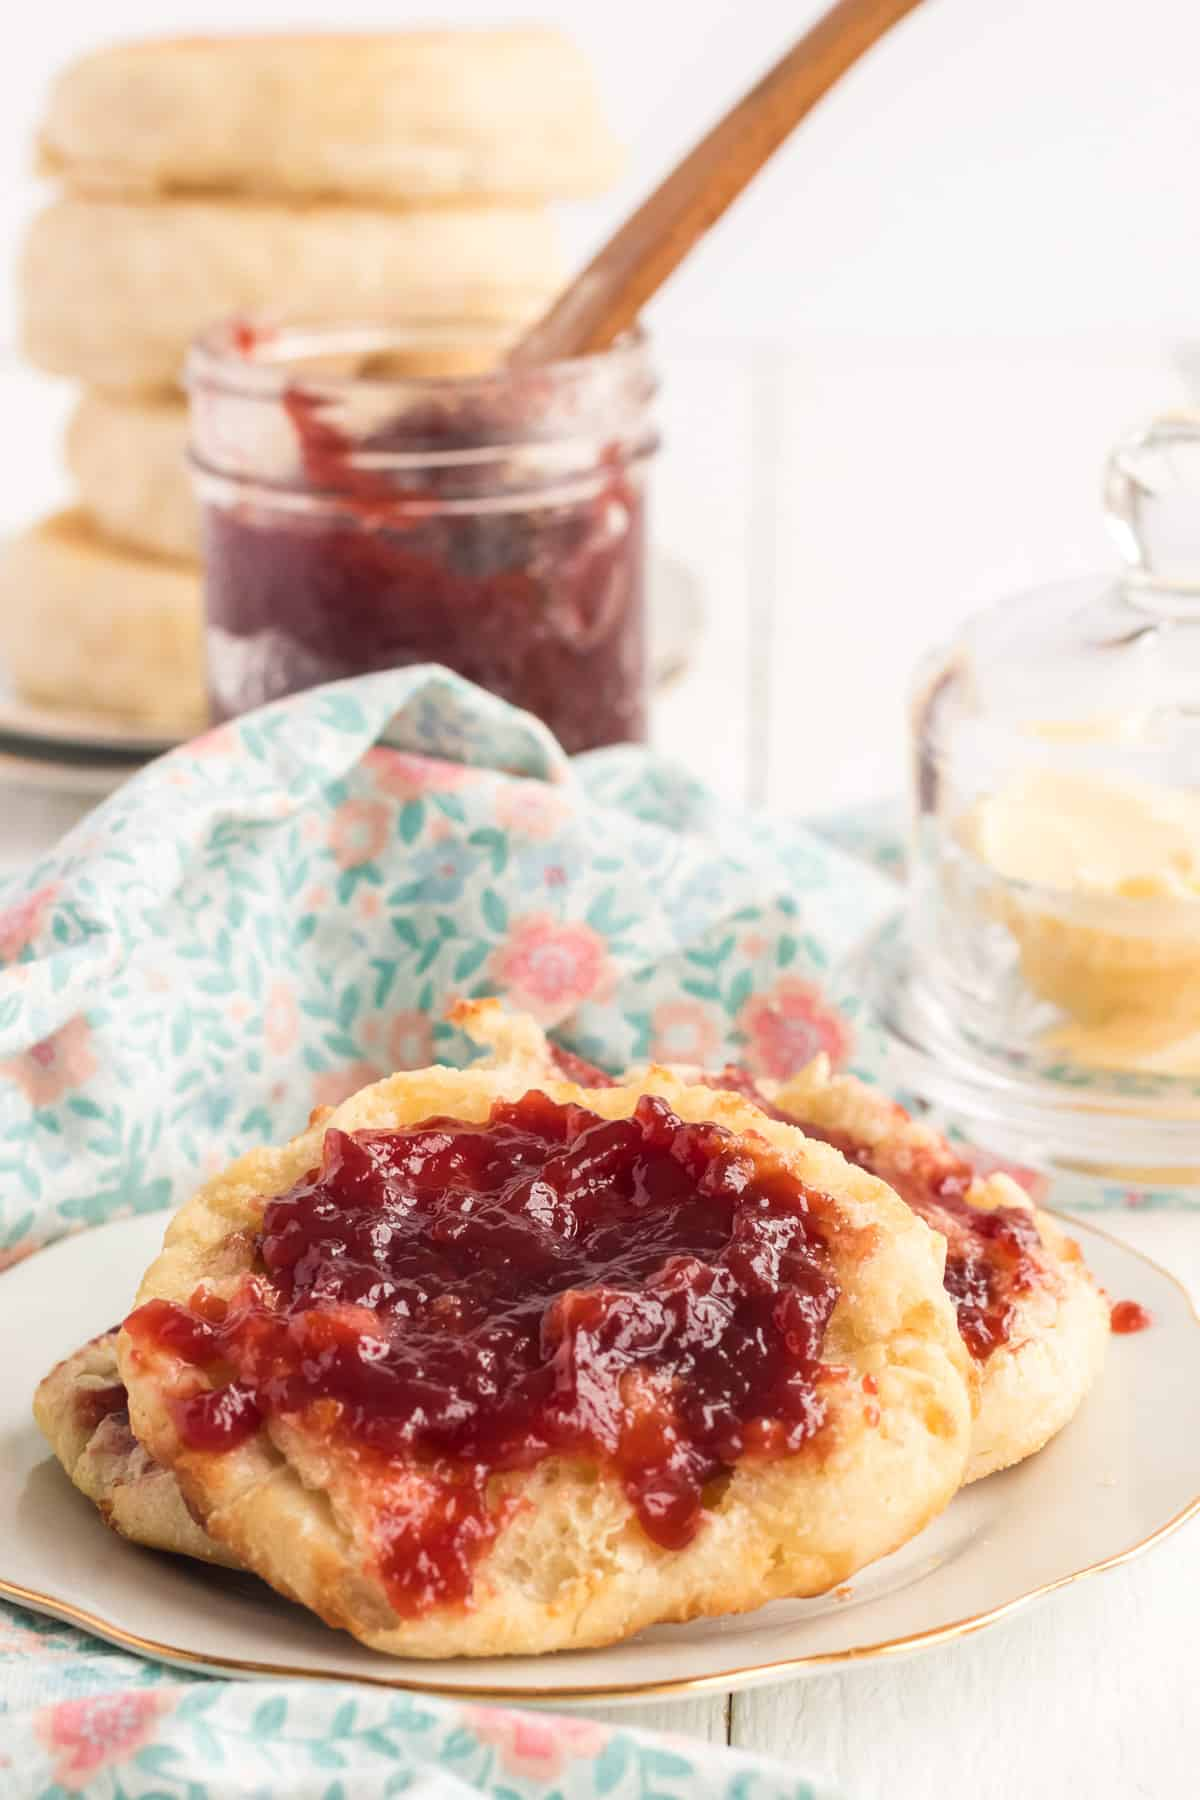 English muffins on a plate with jelly.